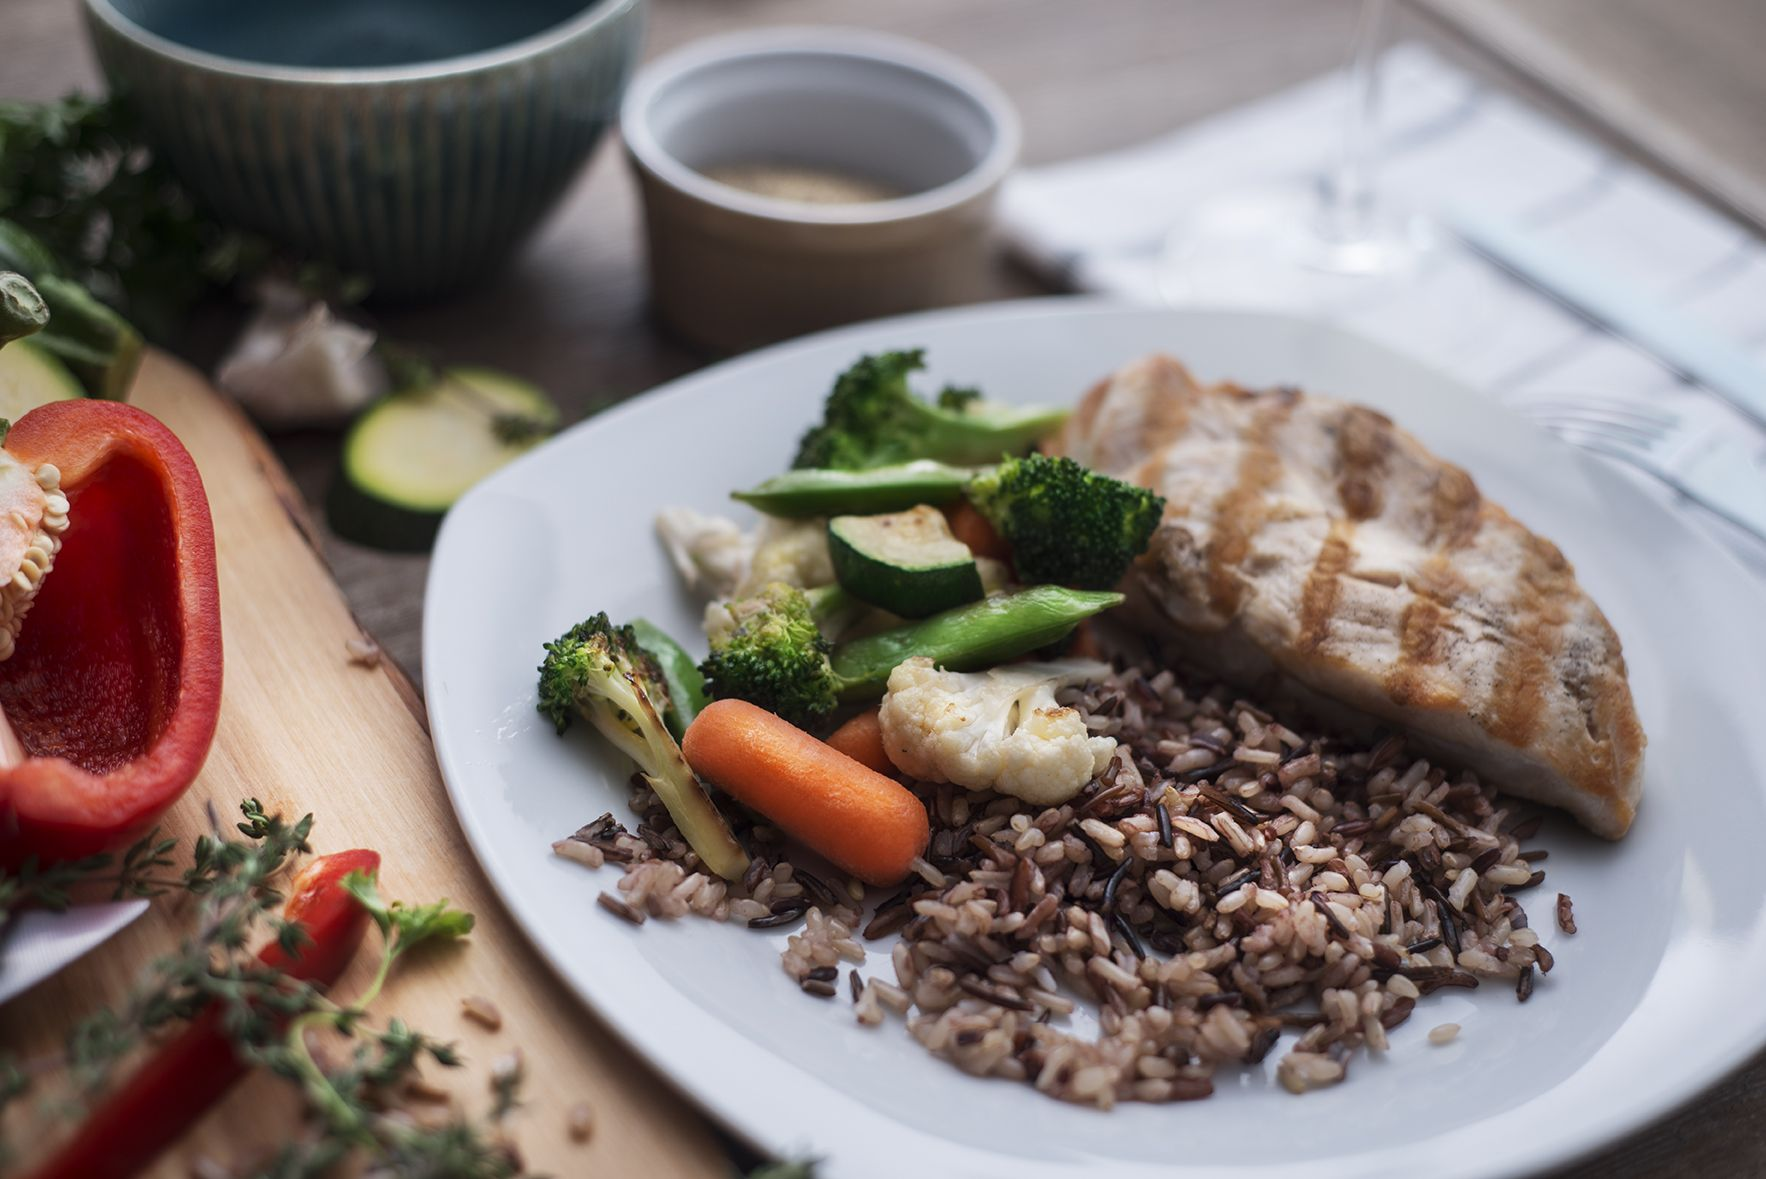 Food delivery service in toronto fit cravings was established in an food delivery service in toronto fit cravings was established in an effort to create a meal forumfinder Images